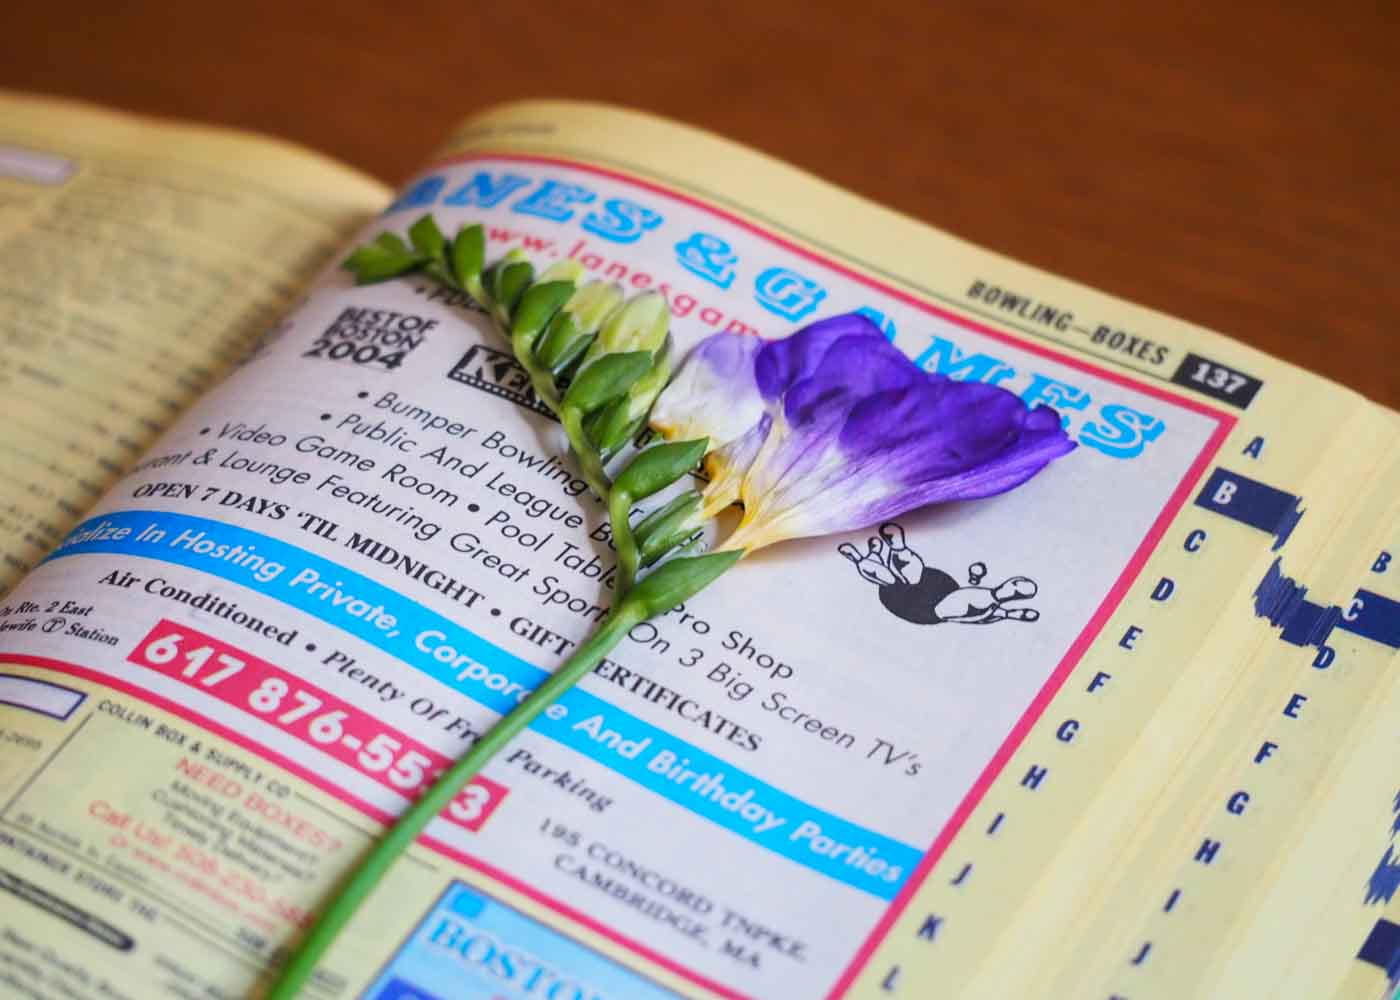 Drying flowers: inserting a sprig of freesia into our phone book.